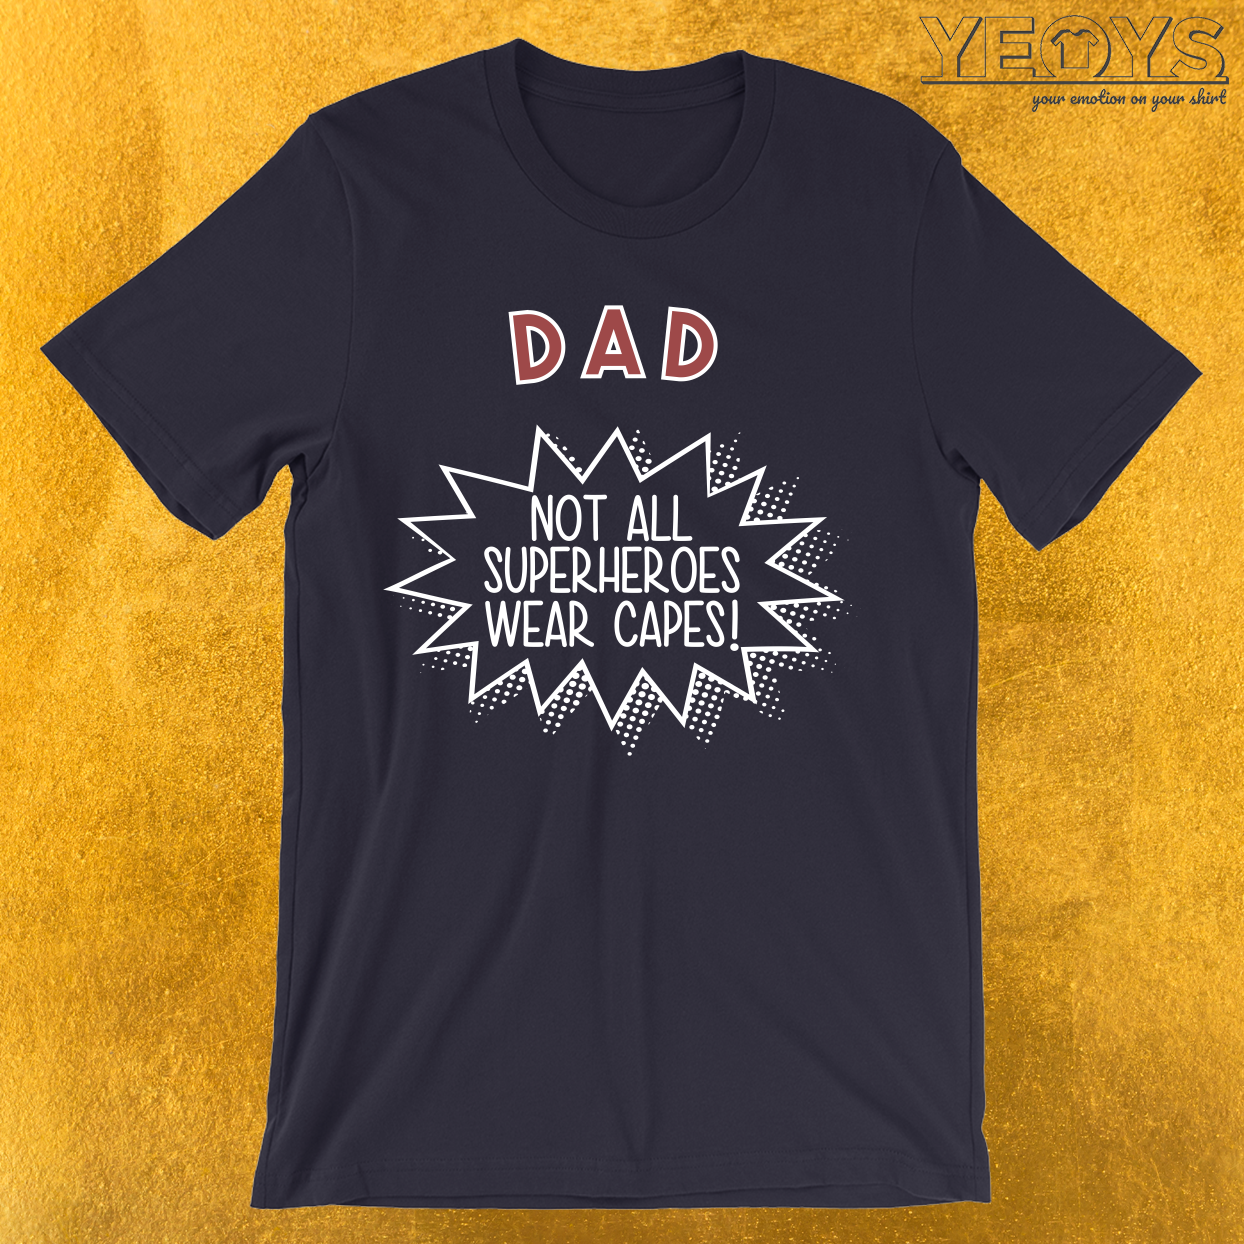 Dad Not All Superheros Wear Capes T-Shirt